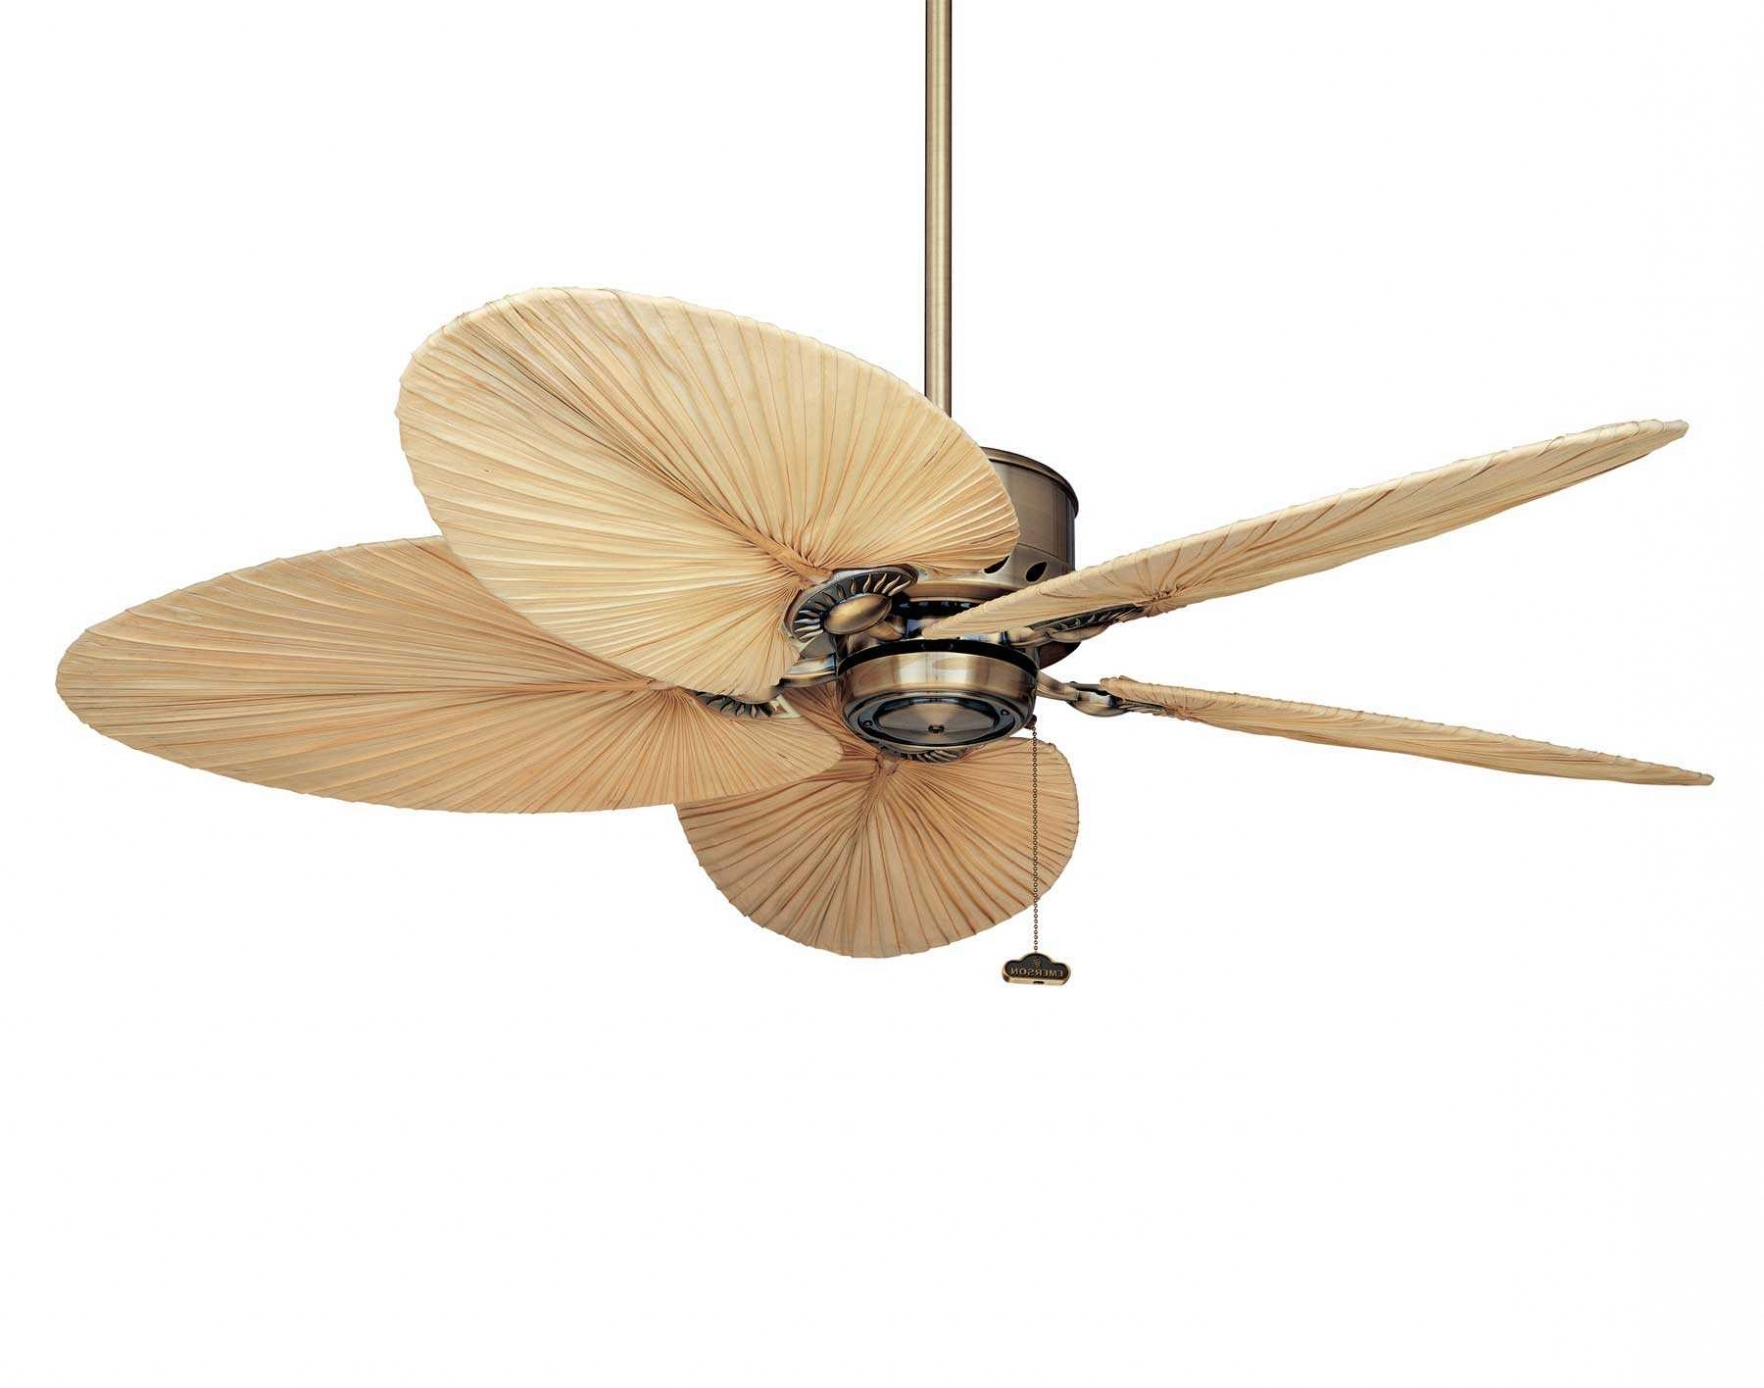 Tropical Outdoor Ceiling Fans With Lights Intended For Best And Newest Tips: Tropical Outdoor Ceiling Fans With Lights White Fan 2018 And (View 6 of 20)